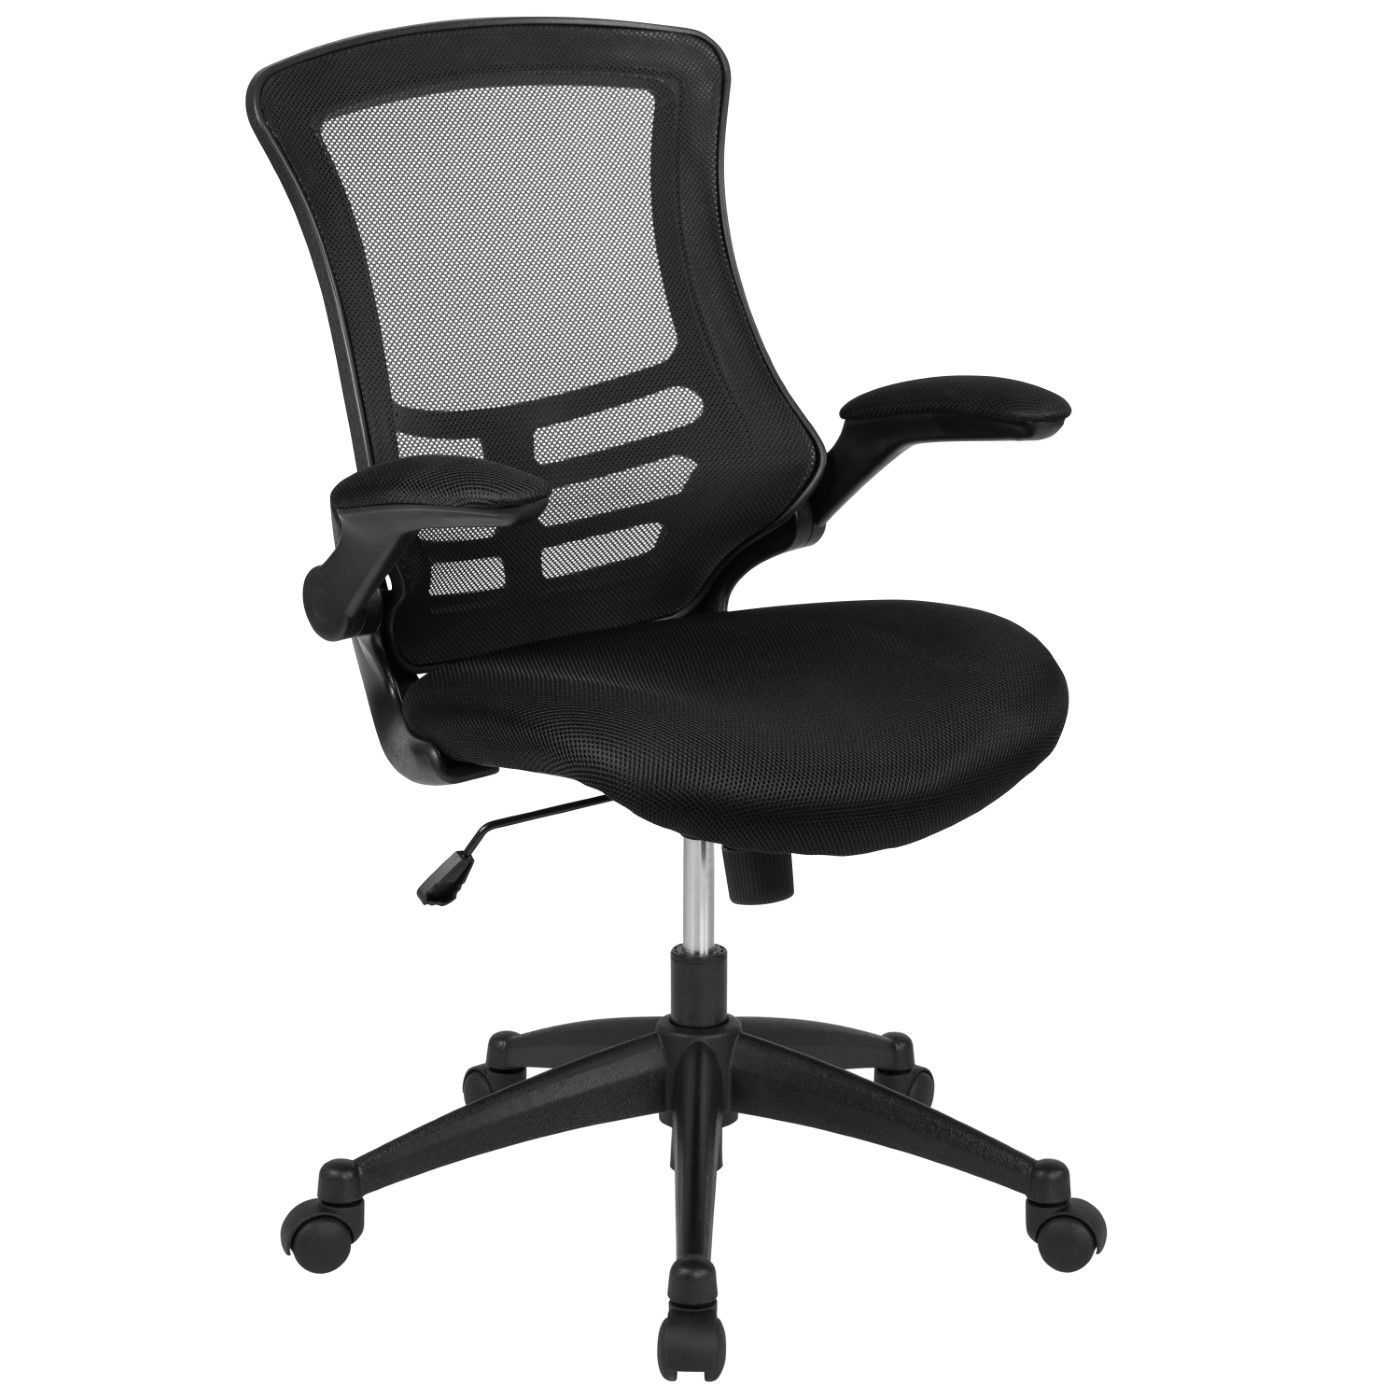 Mid-Back Black Mesh Swivel Ergonomic Task Office Chair with Flip-Up Arms, BIFMA Certified